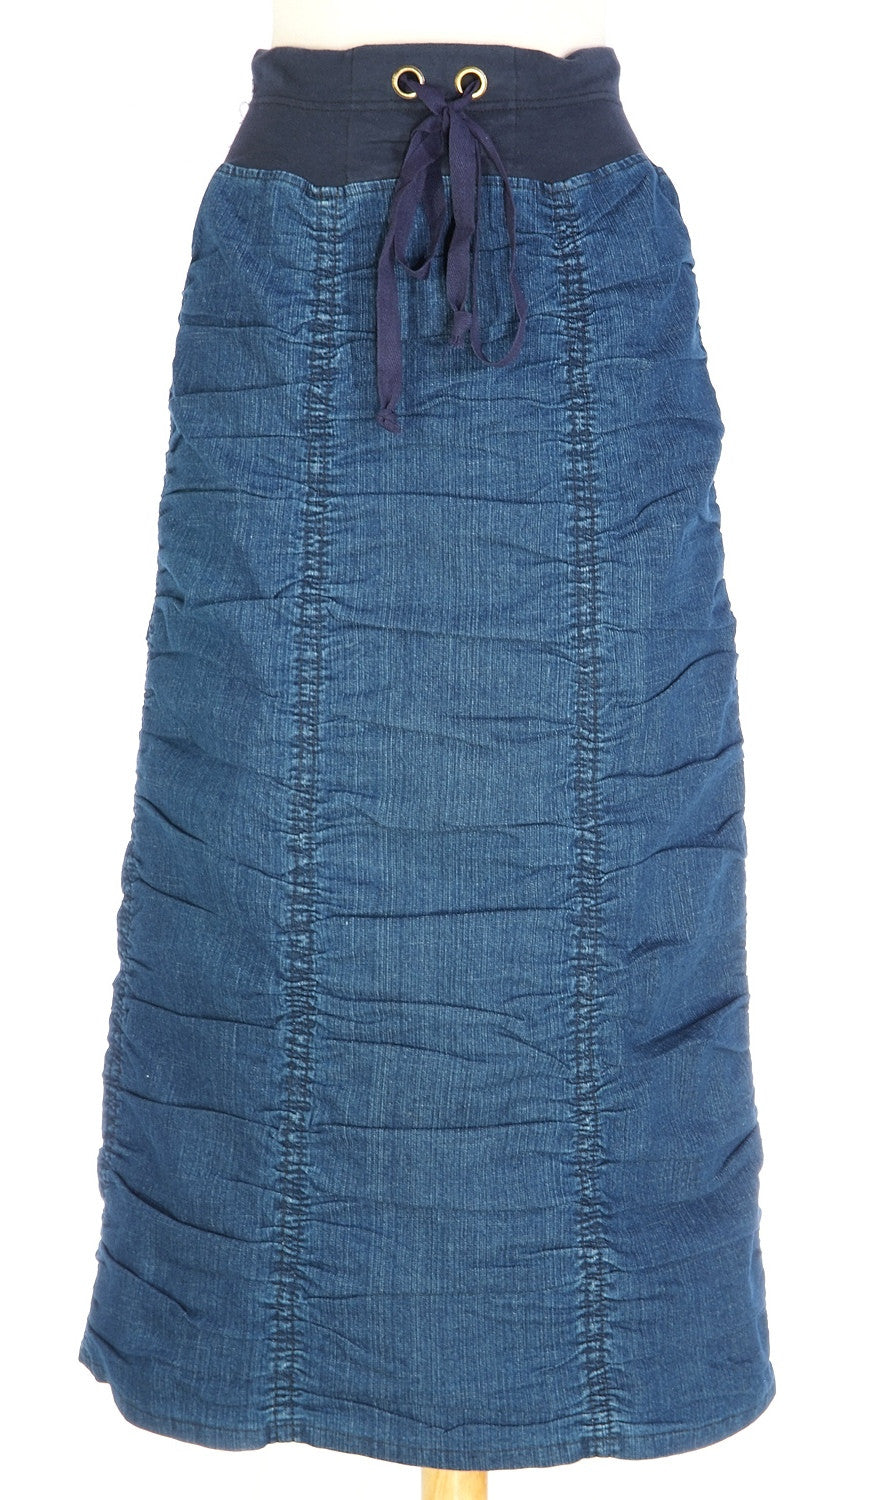 Ruched Denim Long Skirt - The Skirt Boutique